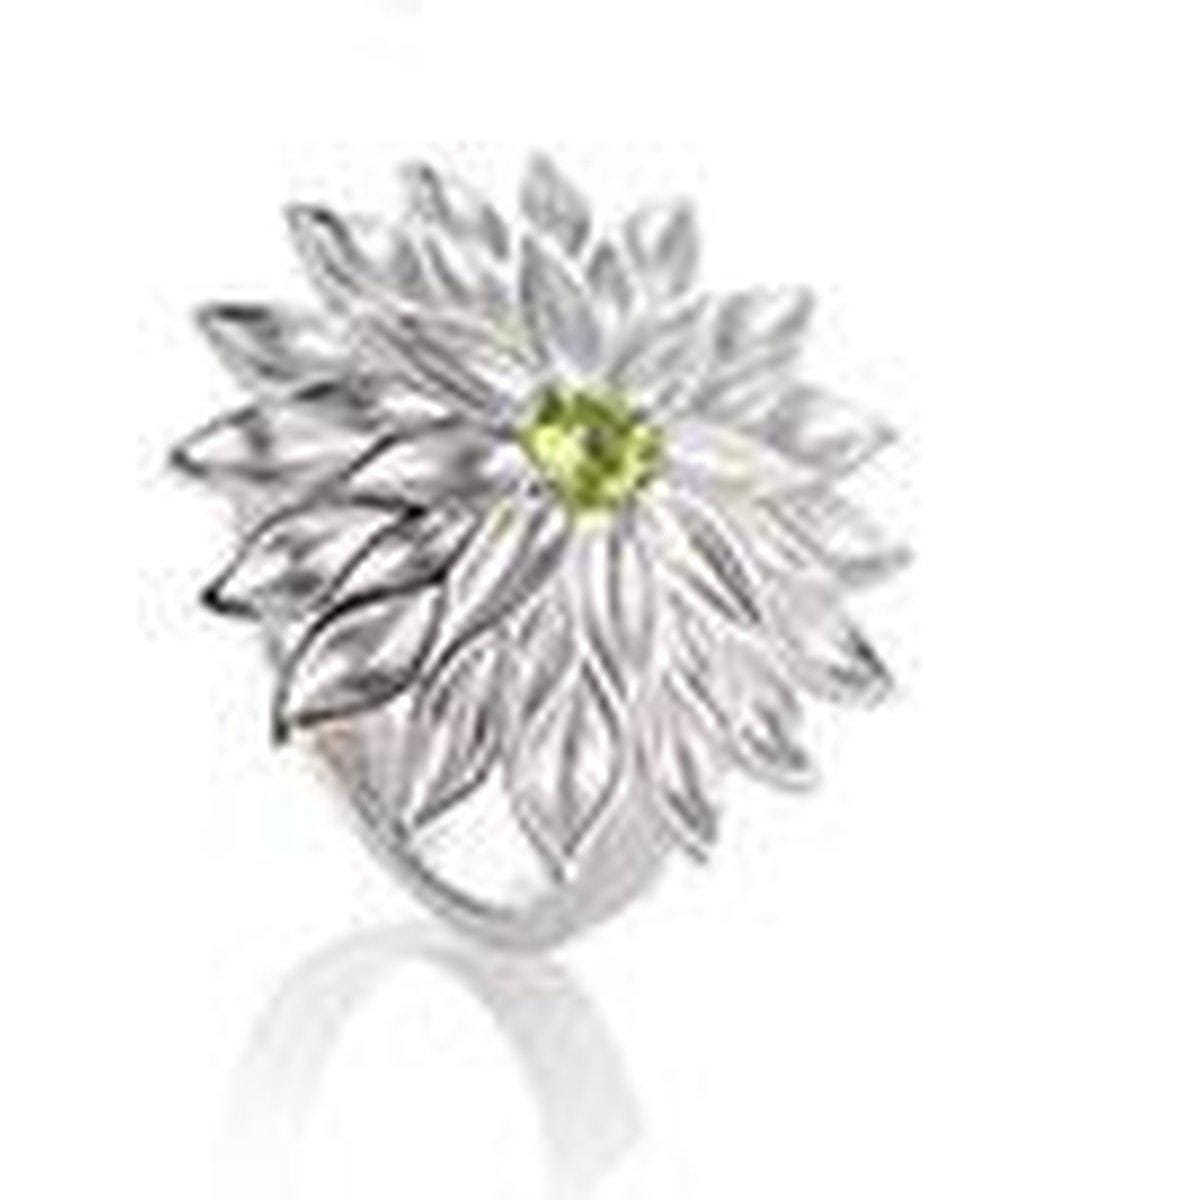 Rhodium Plated Sterling Silver Peridot Ring - 42/03206-PE-Breuning-Renee Taylor Gallery